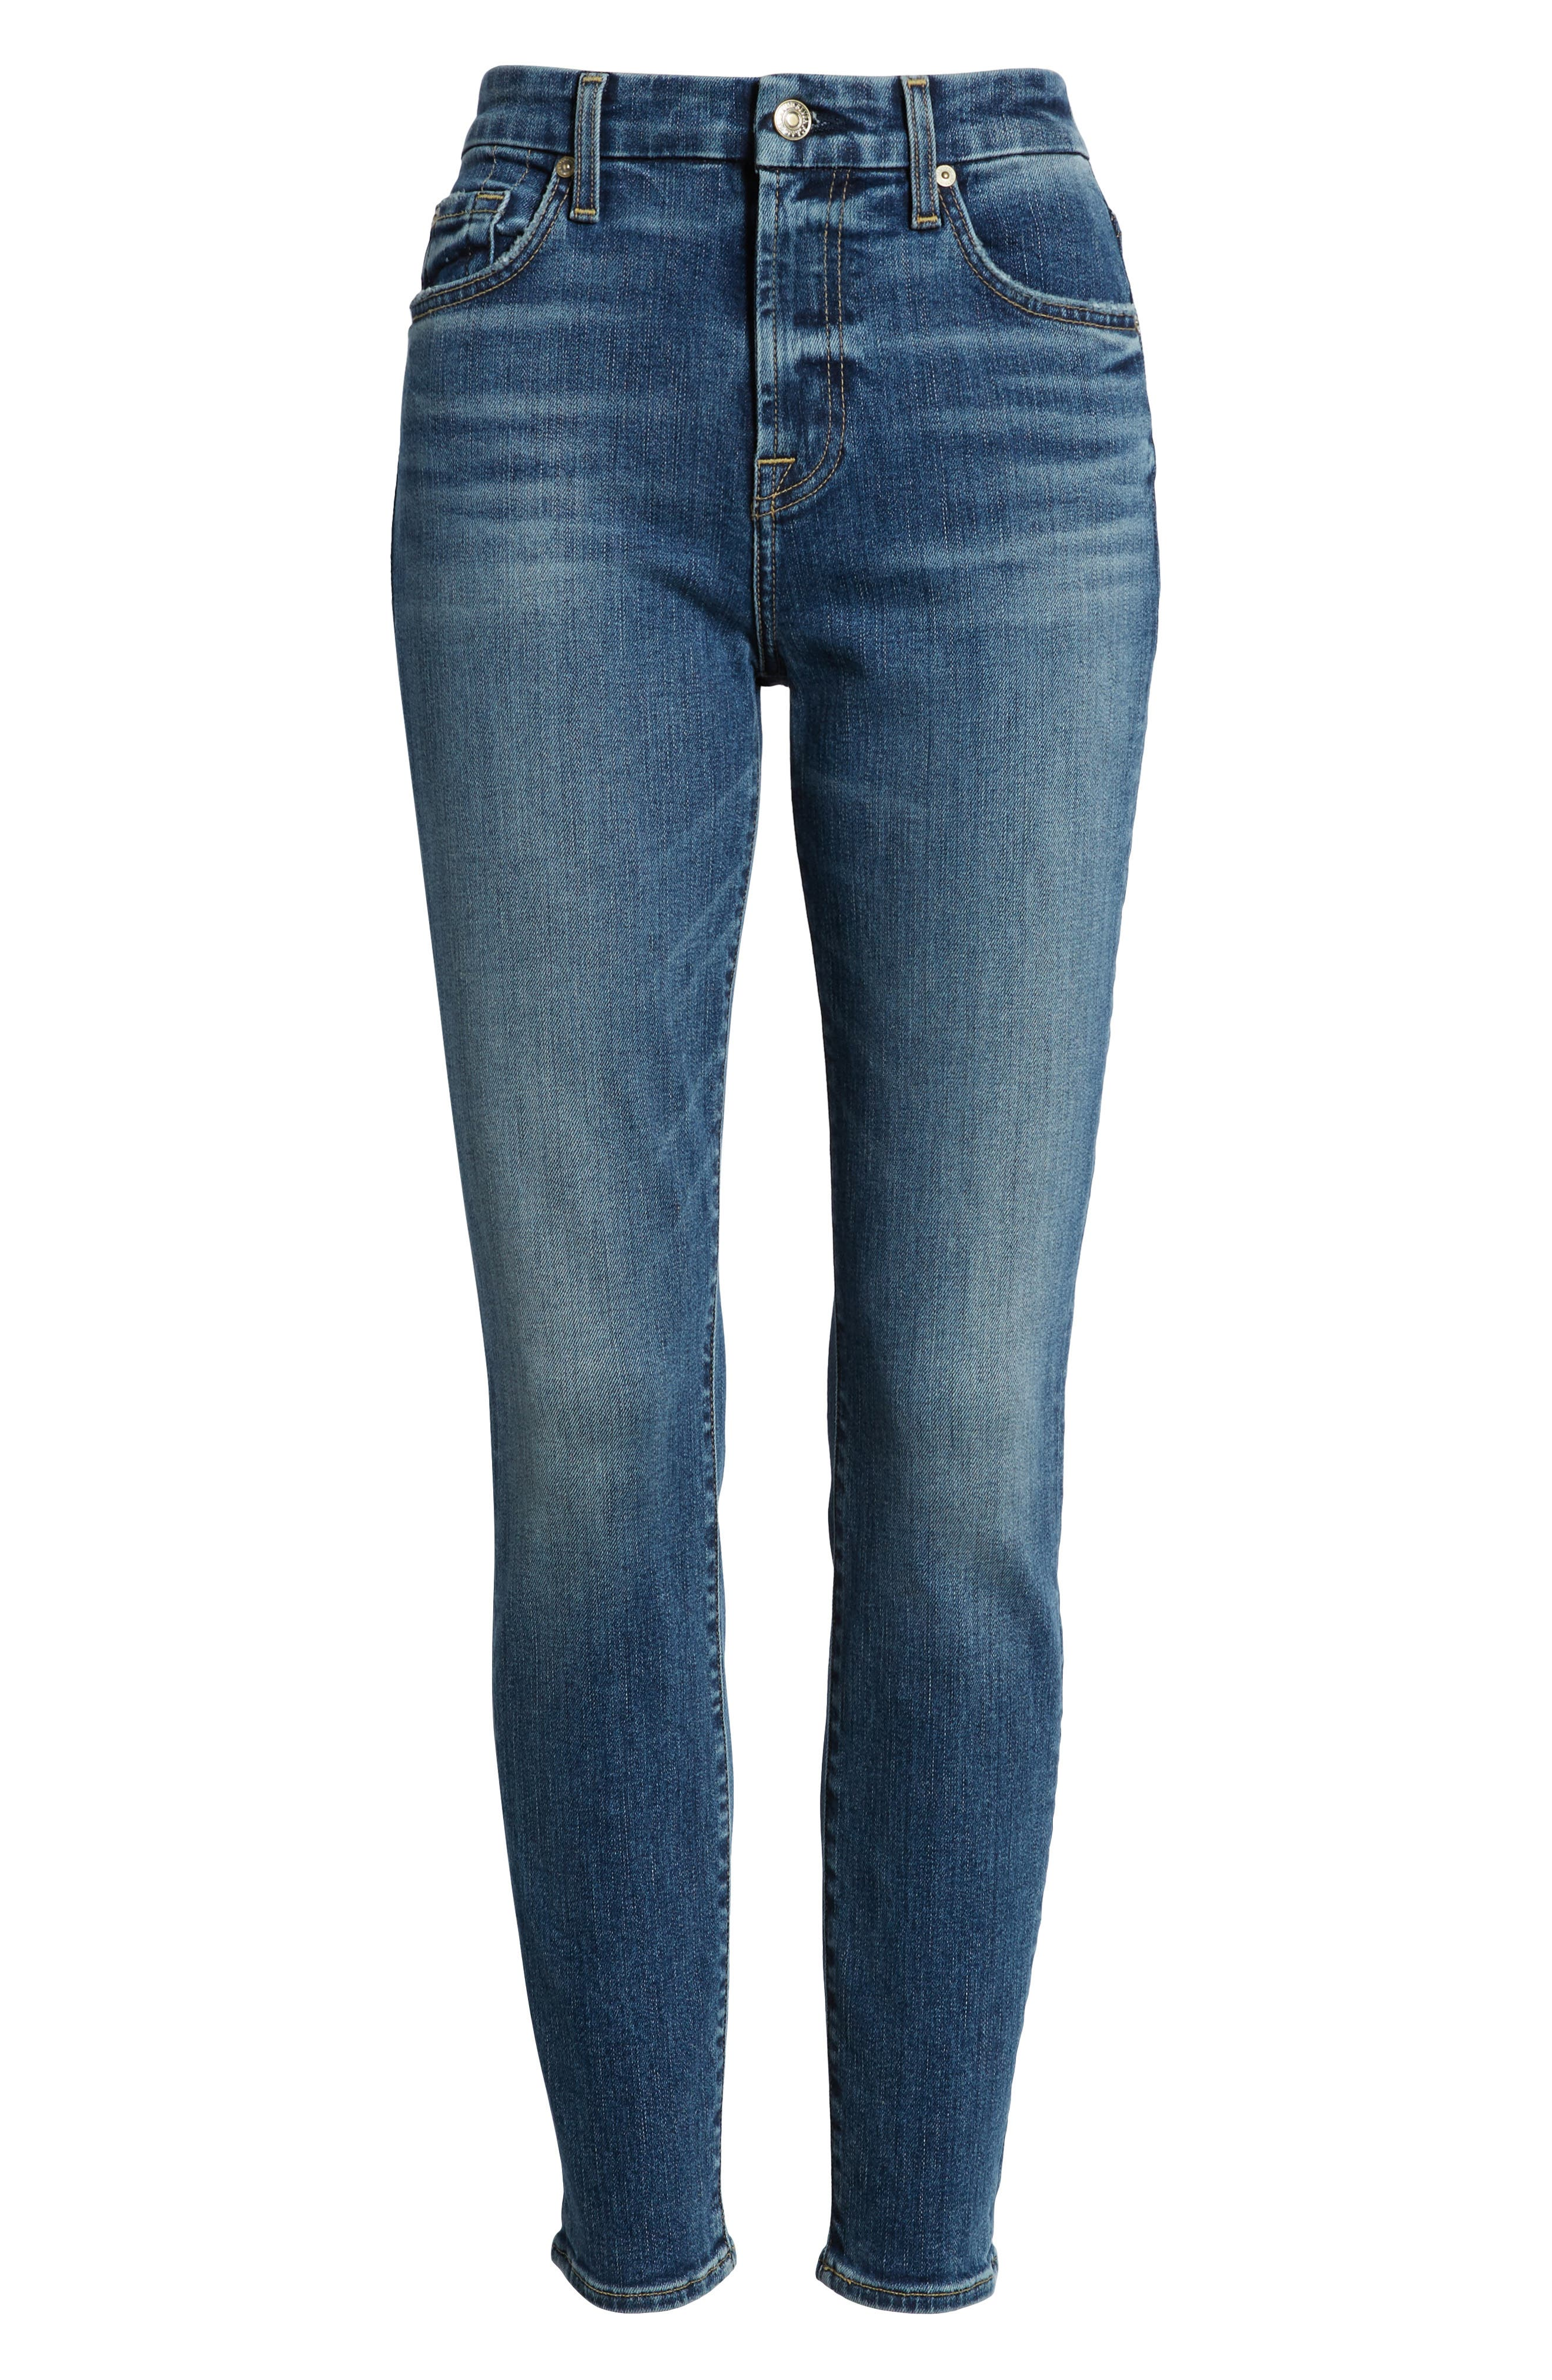 7 FOR ALL MANKIND<SUP>®</SUP>, The High Waist Ankle Skinny Jeans, Alternate thumbnail 7, color, 400